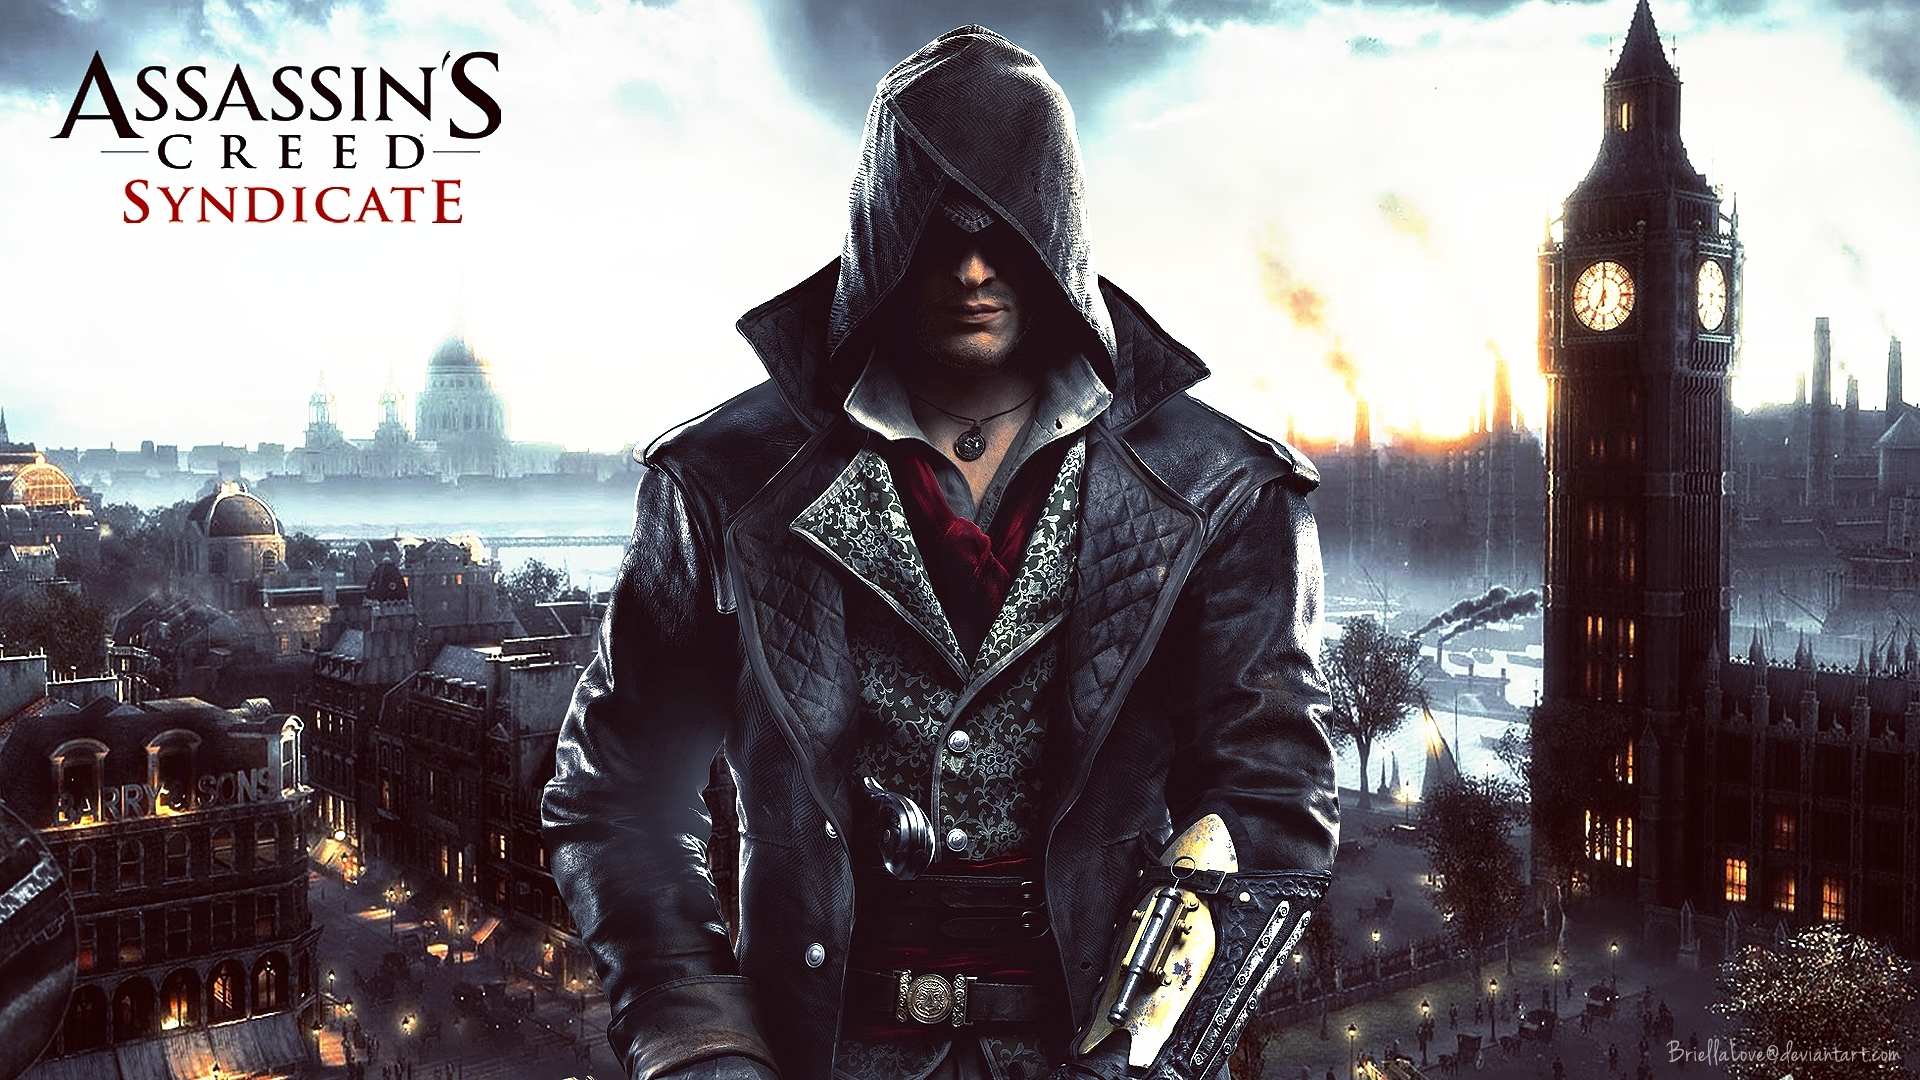 video game assassin's creed: syndicate wallpapers (desktop, phone